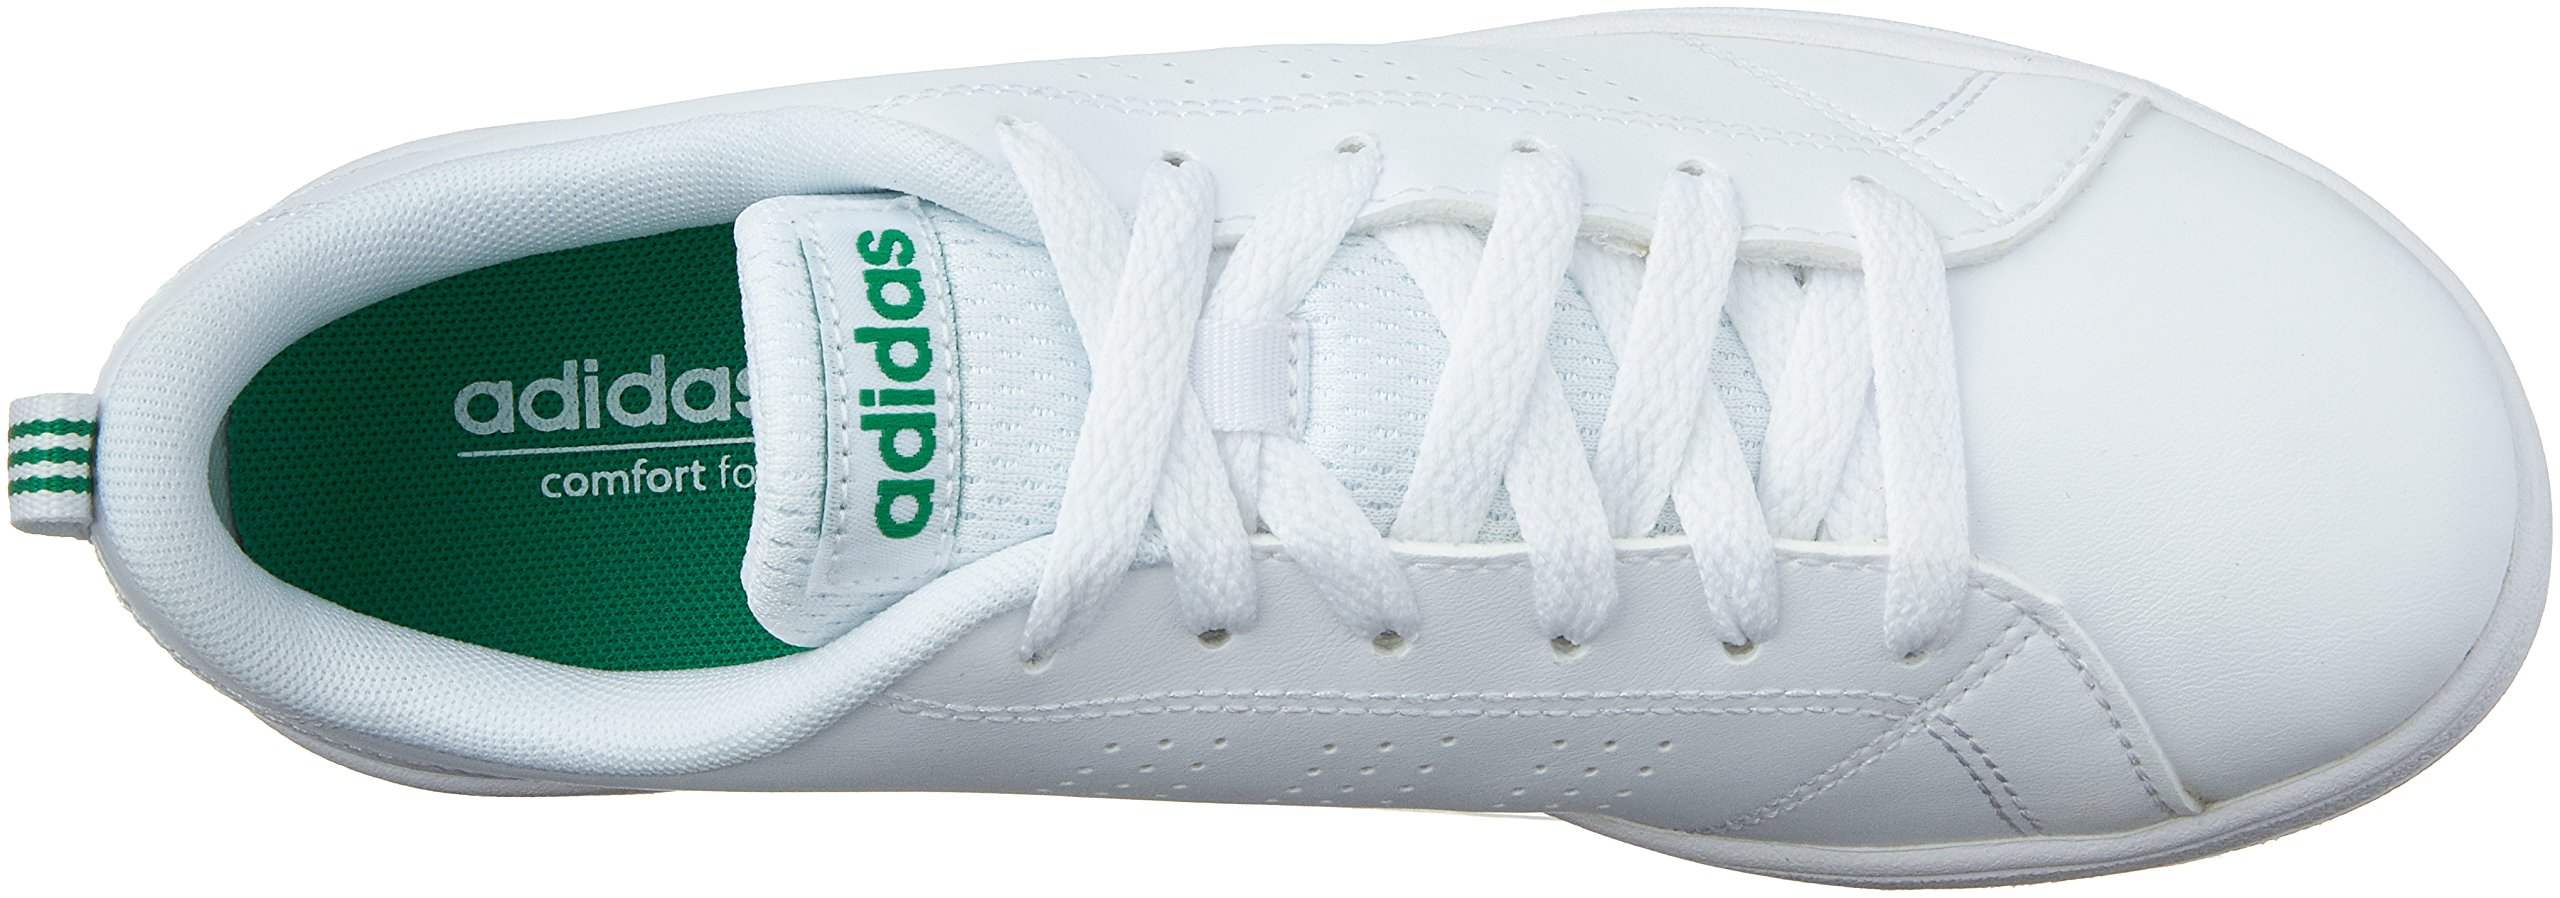 adidas Kids' VS Advantage Clean Sneaker, White/White/Green, 1.5 M US Little Kid by adidas (Image #7)